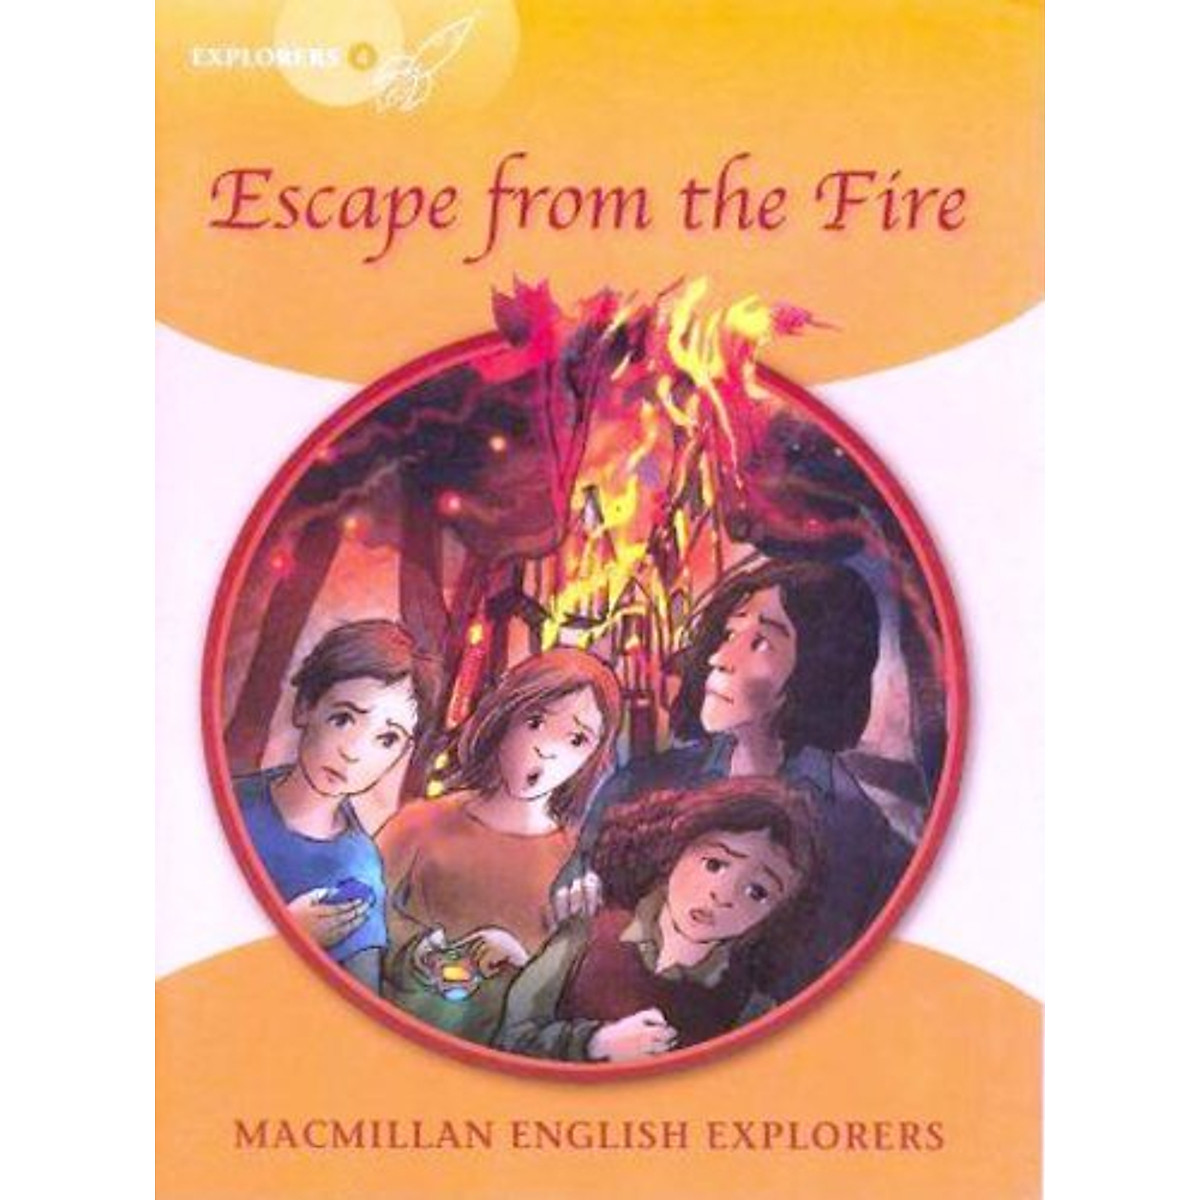 Hình đại diện sản phẩm Explorers 4: Escape From the Fire (High Level Primary Readers for Middle East ELT Course): Escape From the Fire (High Level Primary Readers for Middle East ELT Course)